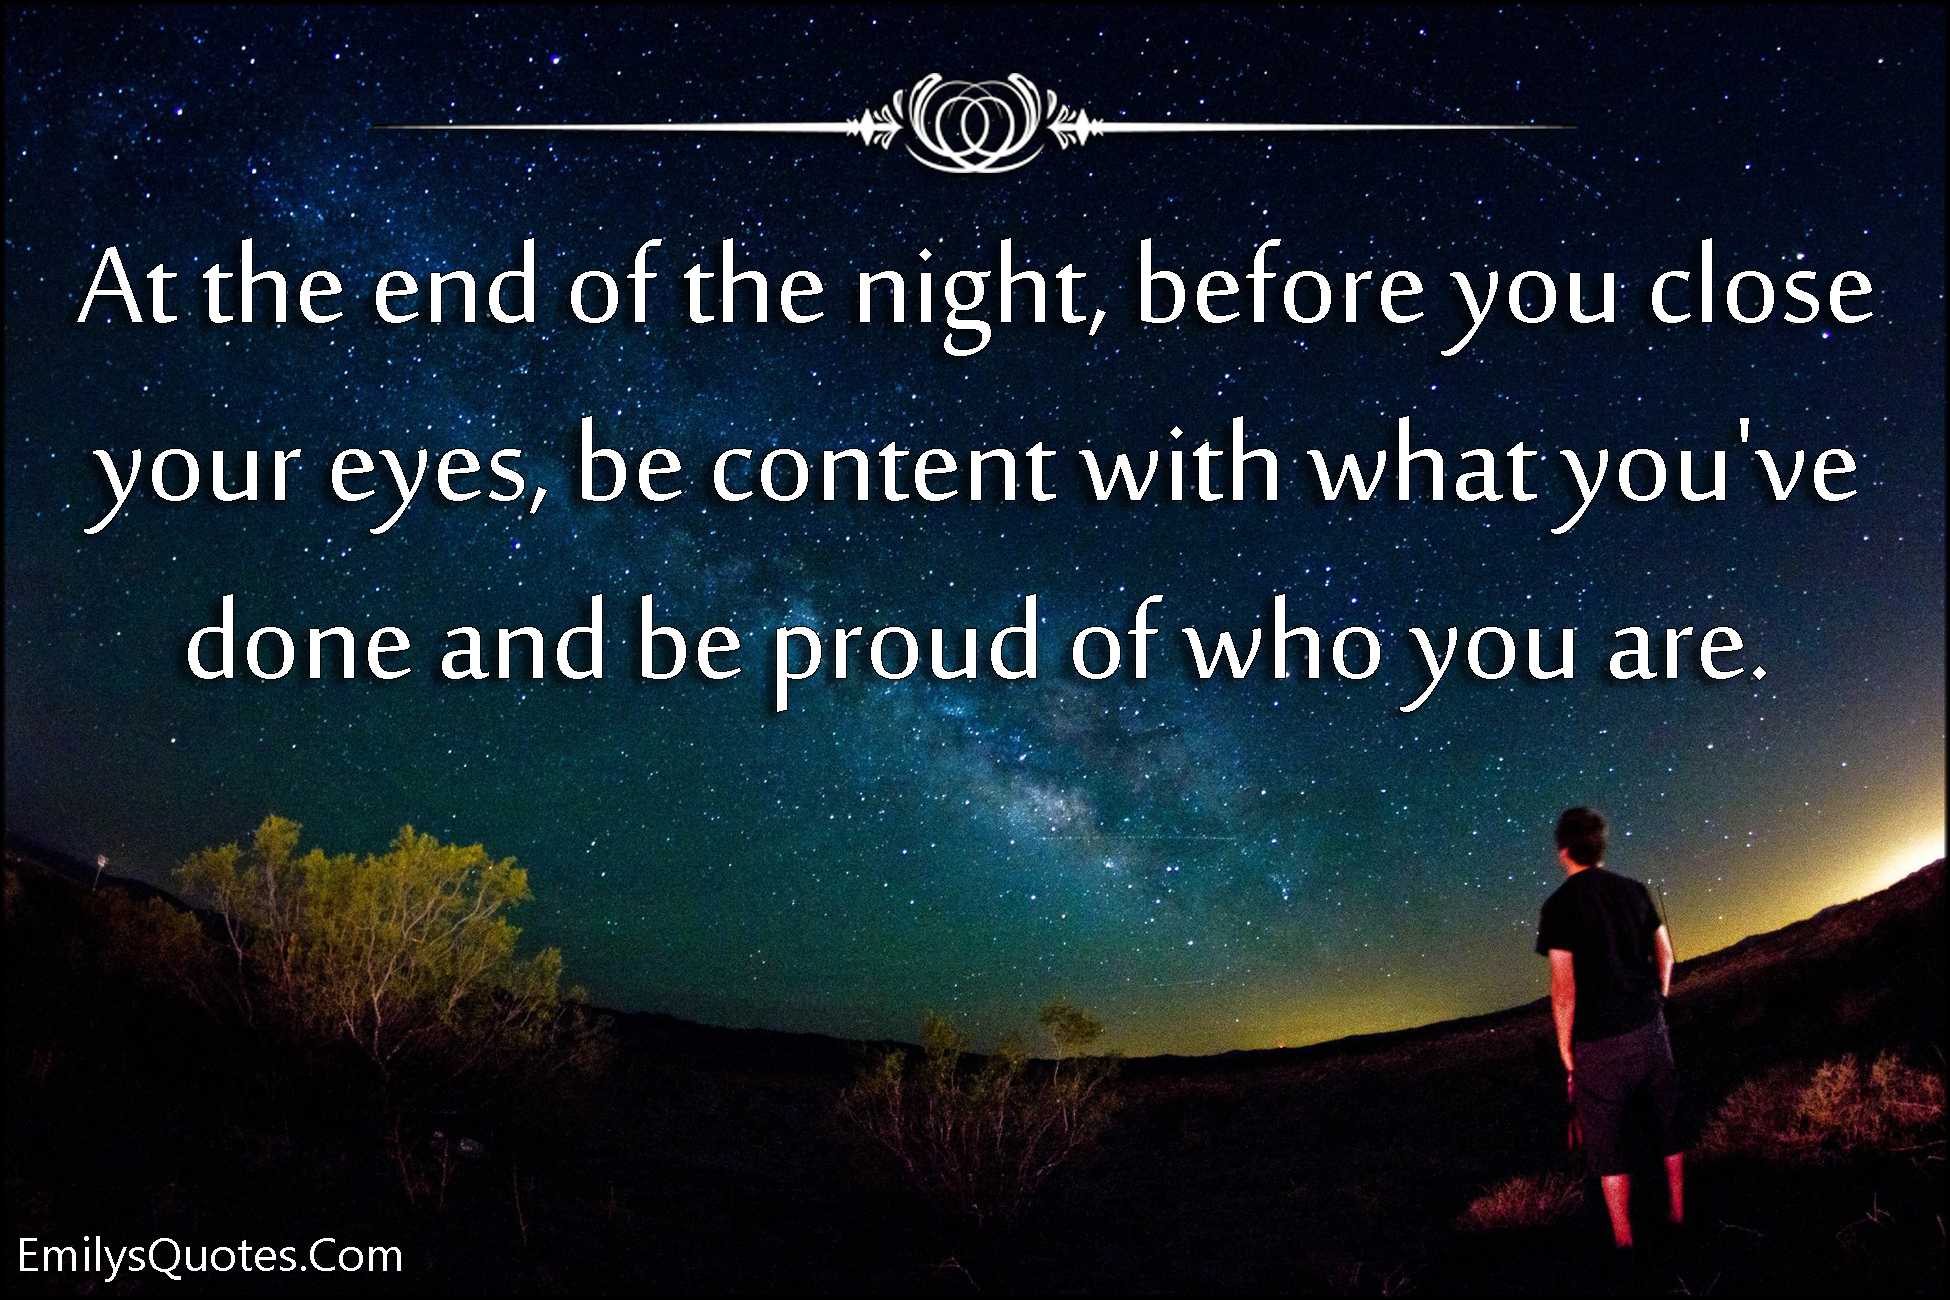 Proud Of You Quotes At The End Of The Night Before You Close Your Eyes Be Content